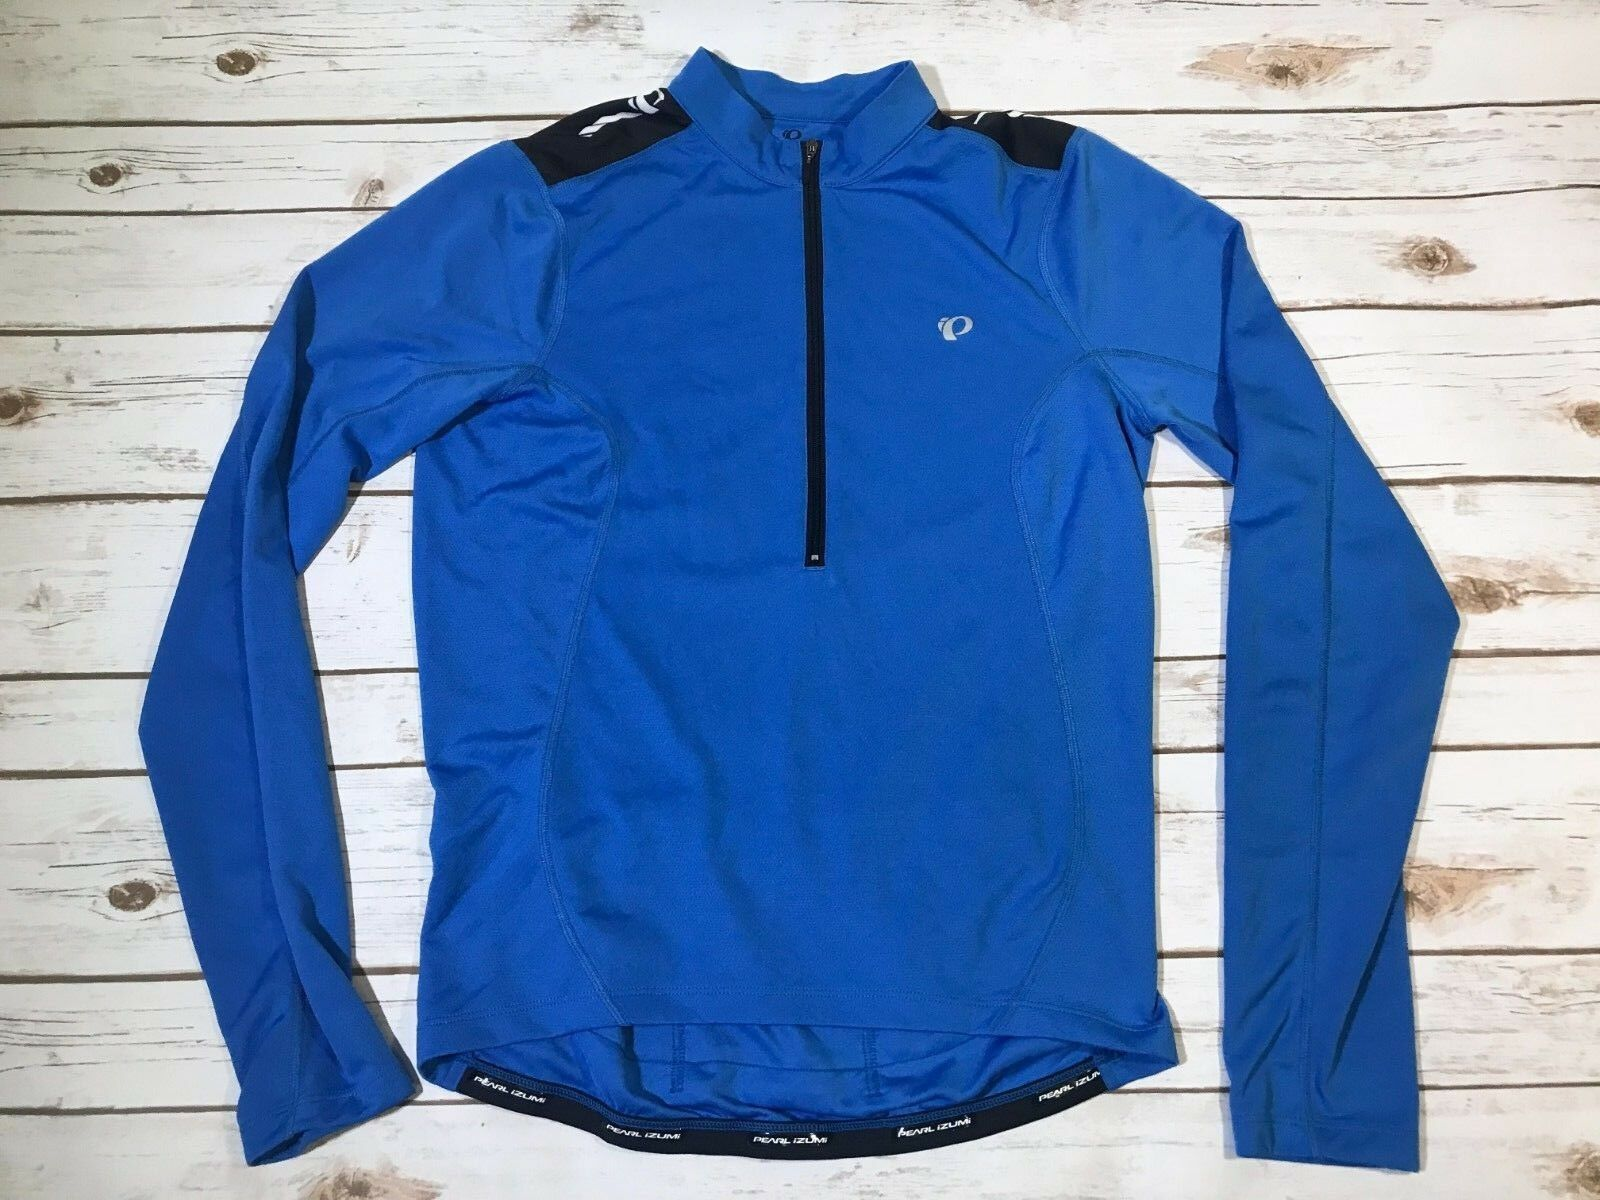 Men's Pearl Izumi bluee Half Zip Cycling Bike Jersey Shirt Long Sleeve Small S